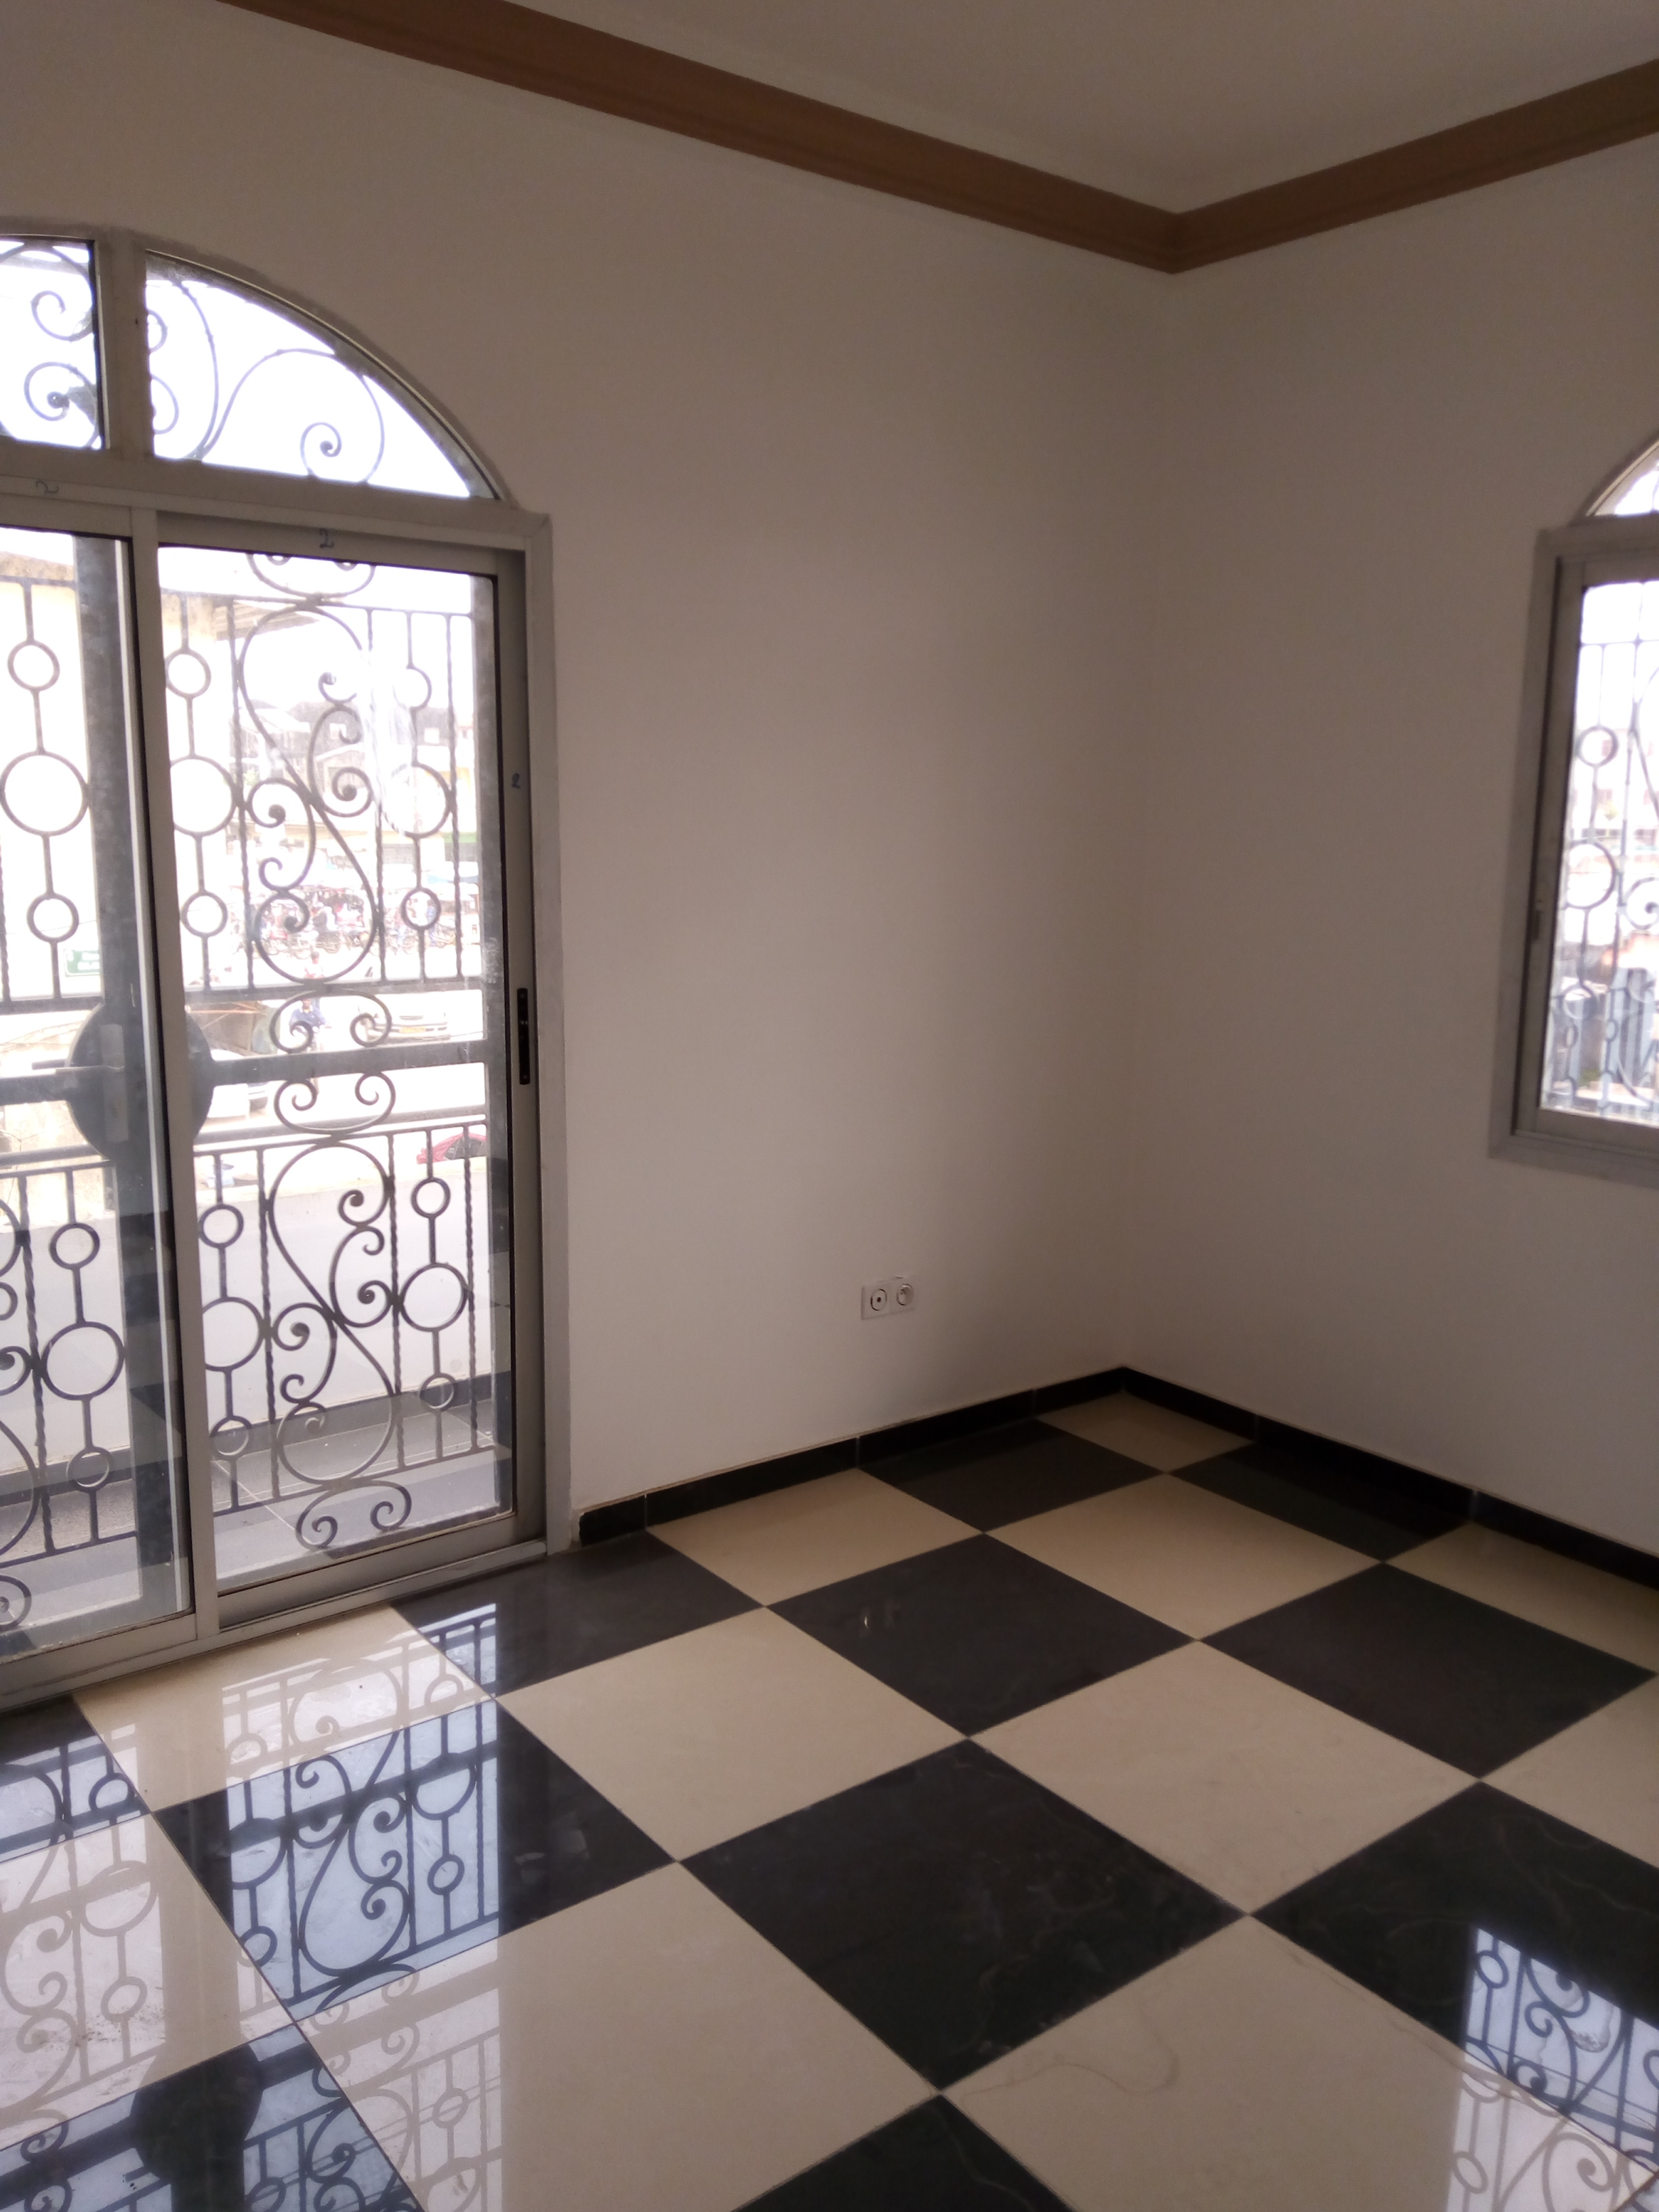 Apartment to rent - Douala, Makepe,  - 1 living room(s), 2 bedroom(s), 2 bathroom(s) - 200 000 FCFA / month